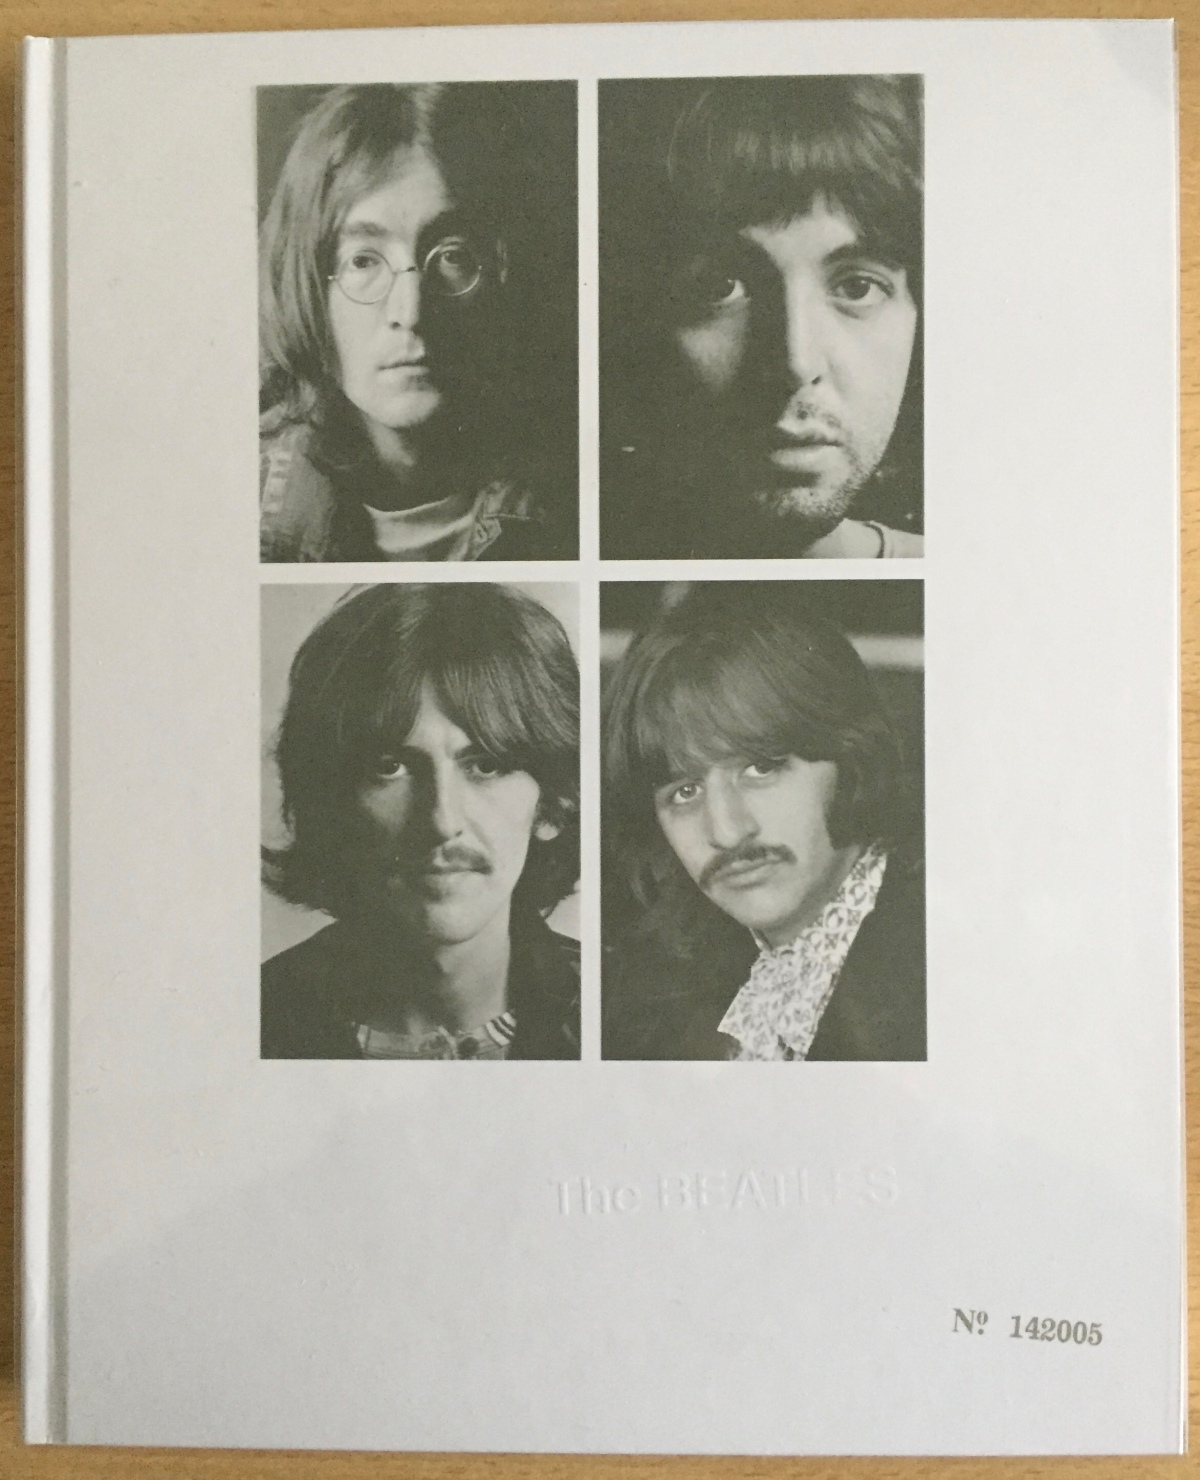 The White Album (The Beatles) – Box Set Review